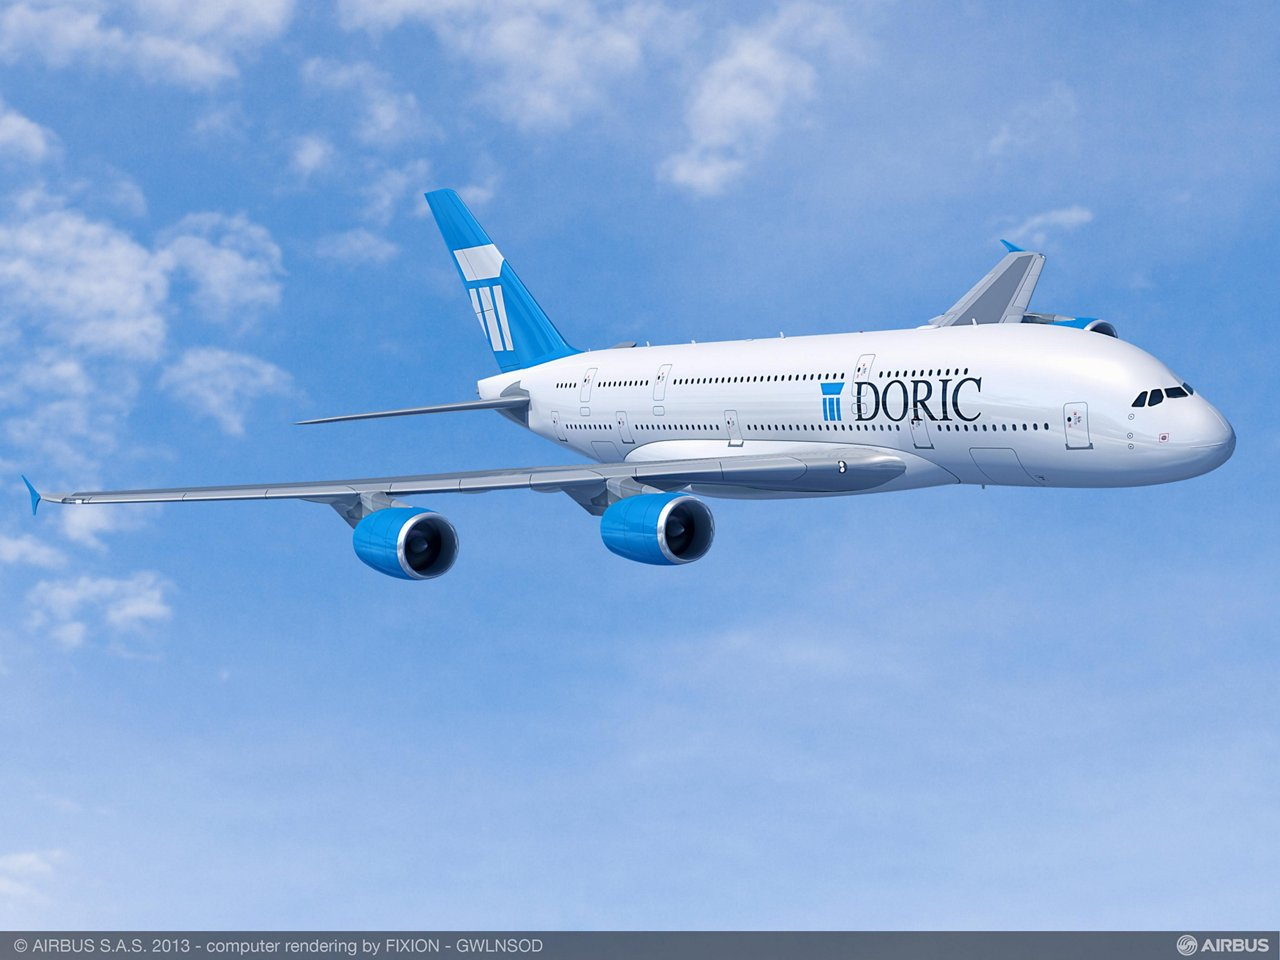 Paris Air Show – Doric Lease Corp A380 1